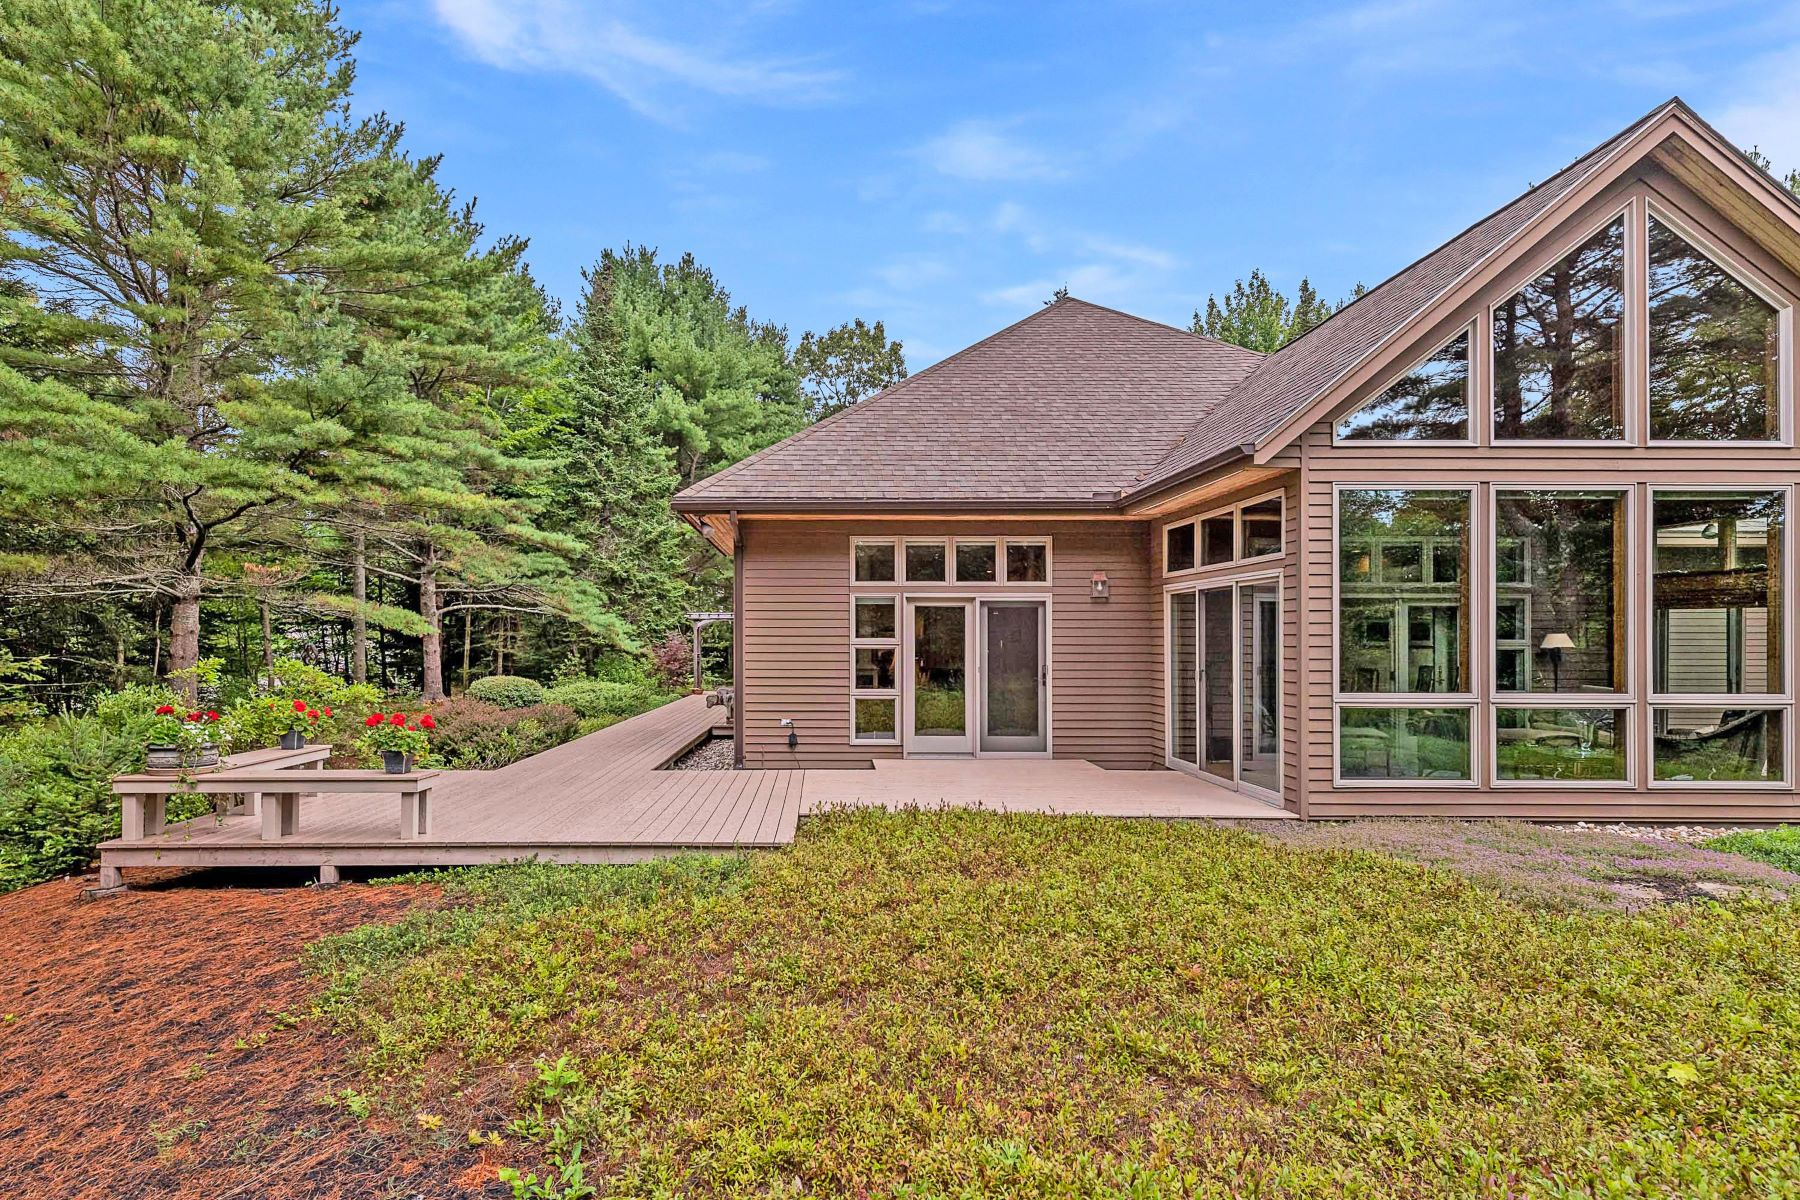 Single Family Homes for Sale at 3 Wildwood Lane Scarborough, Maine 04074 United States